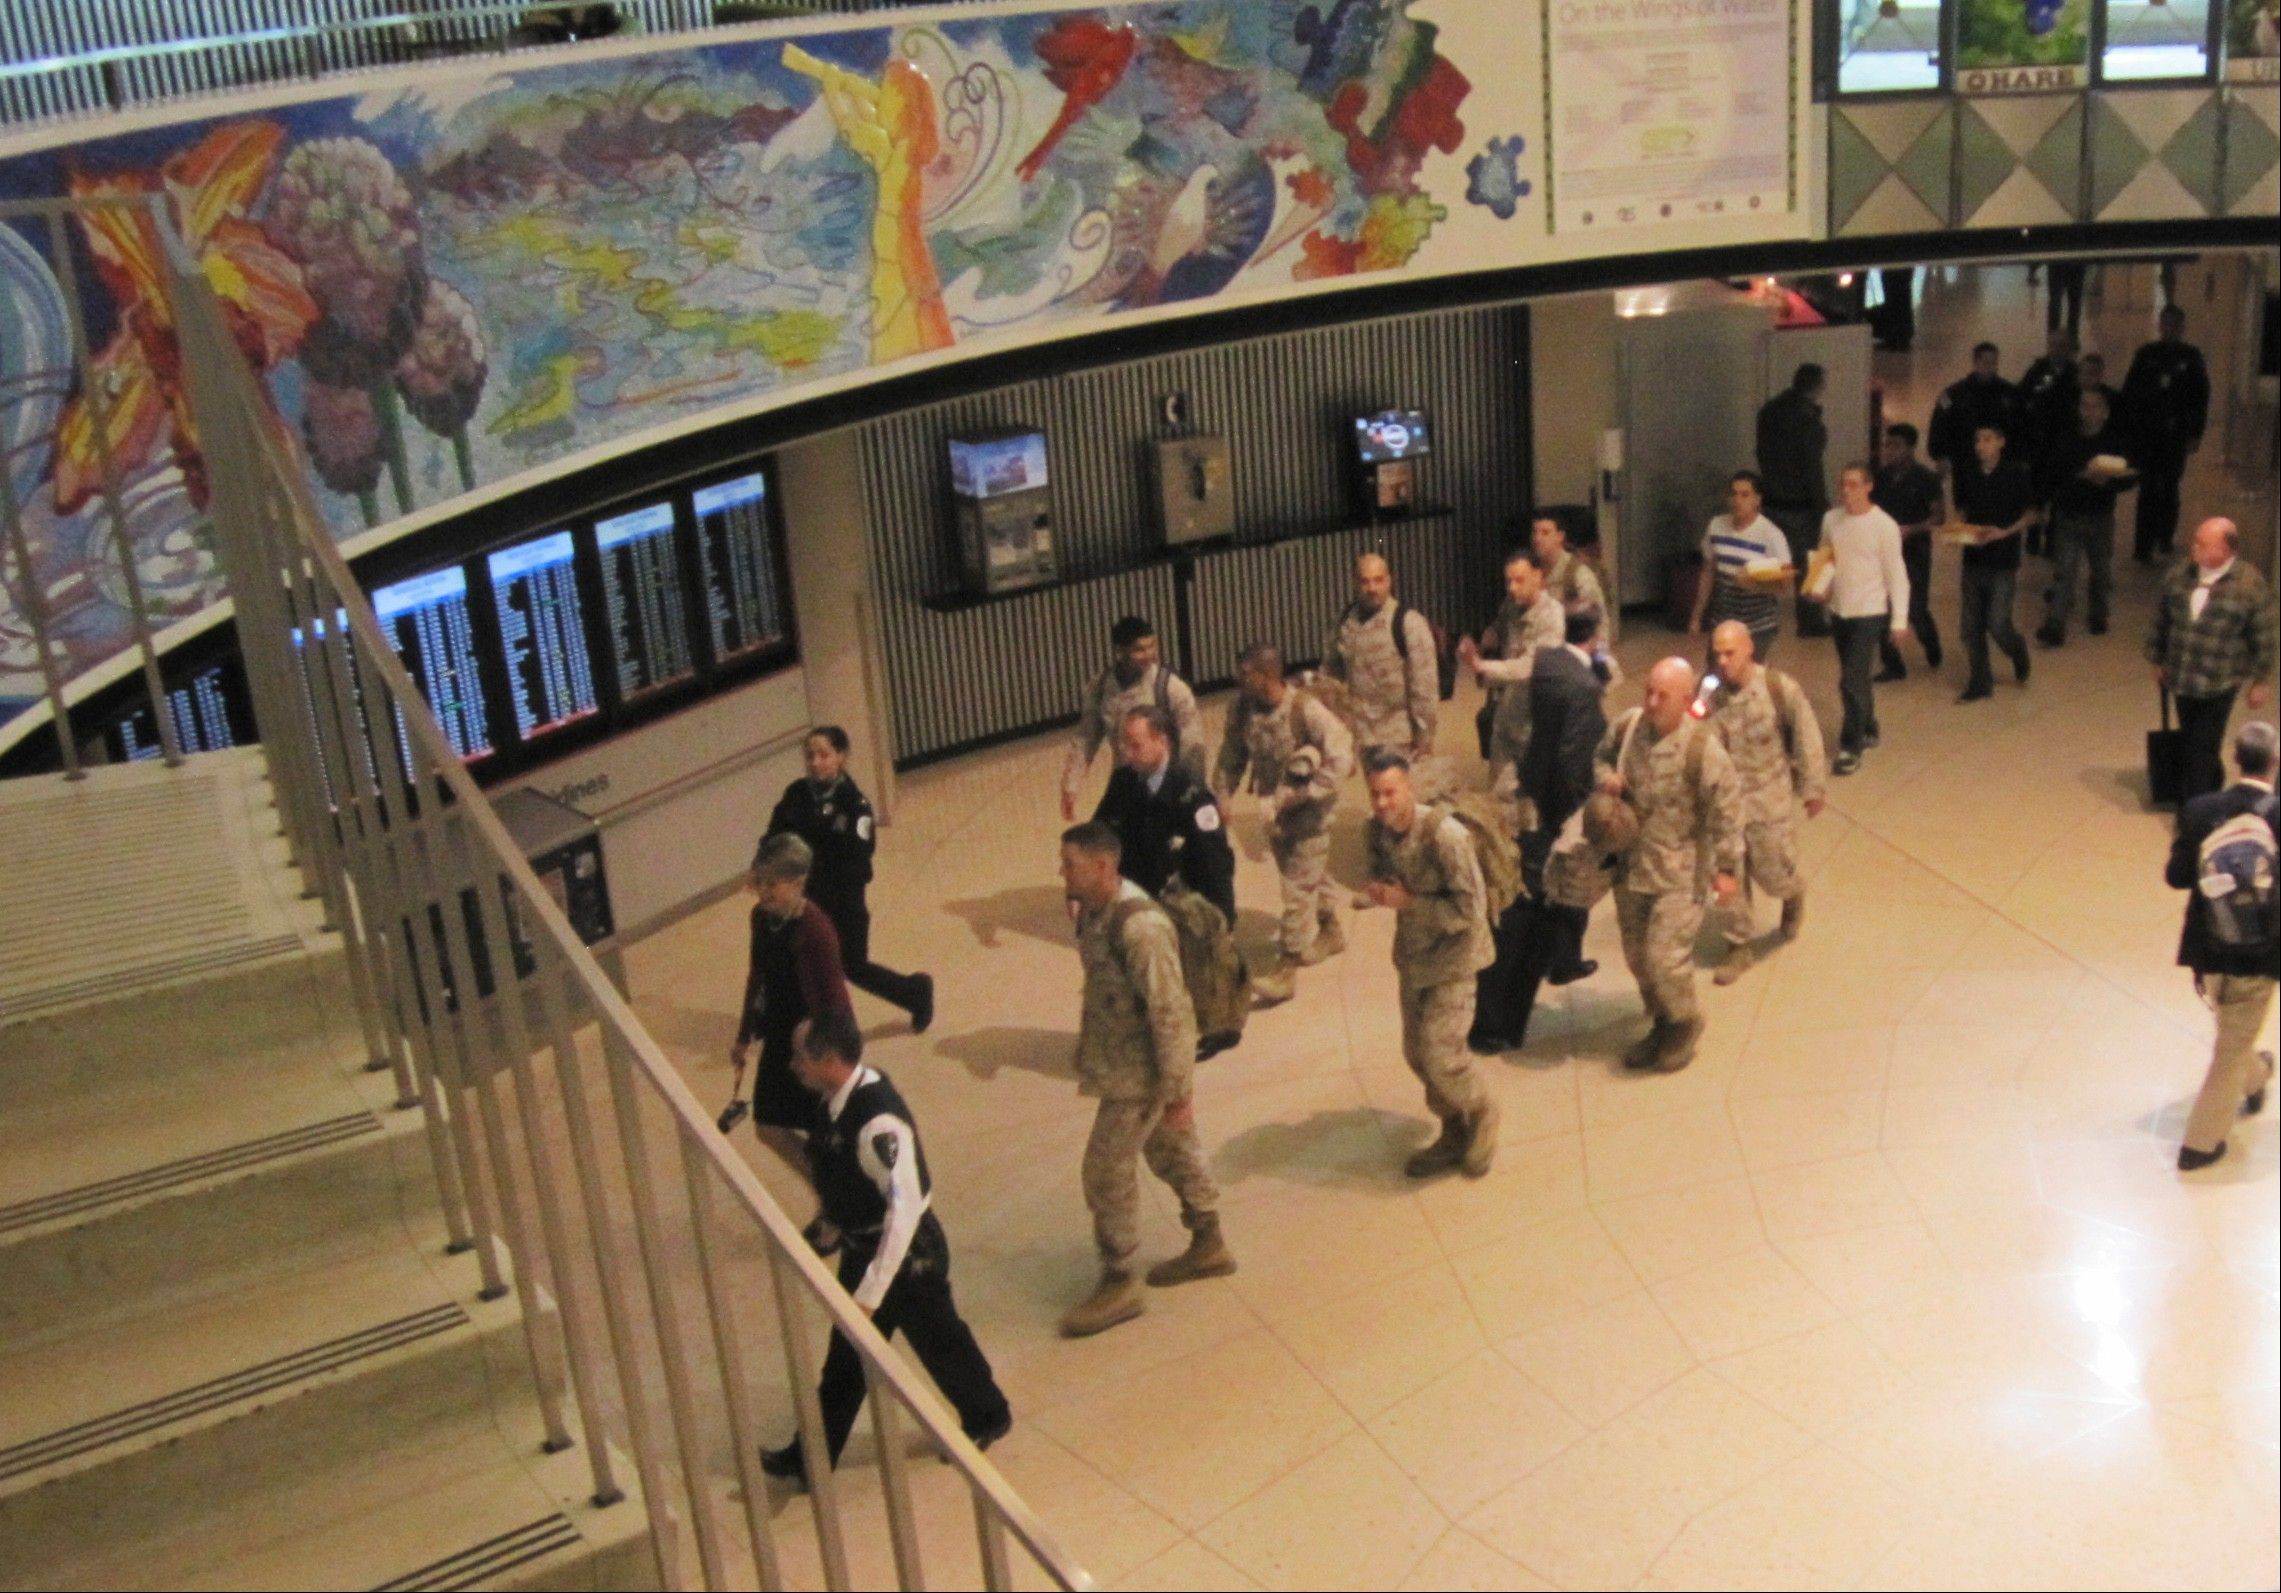 Marines walk through a terminal at O�Hare International Airport during part of their journey back home after a tour of duty in Afghanistan. The Marines were treated like heroes at the airport after a retired Marine and some others were not going to let them make the final leg of their journey to San Diego without thanking them for their service.